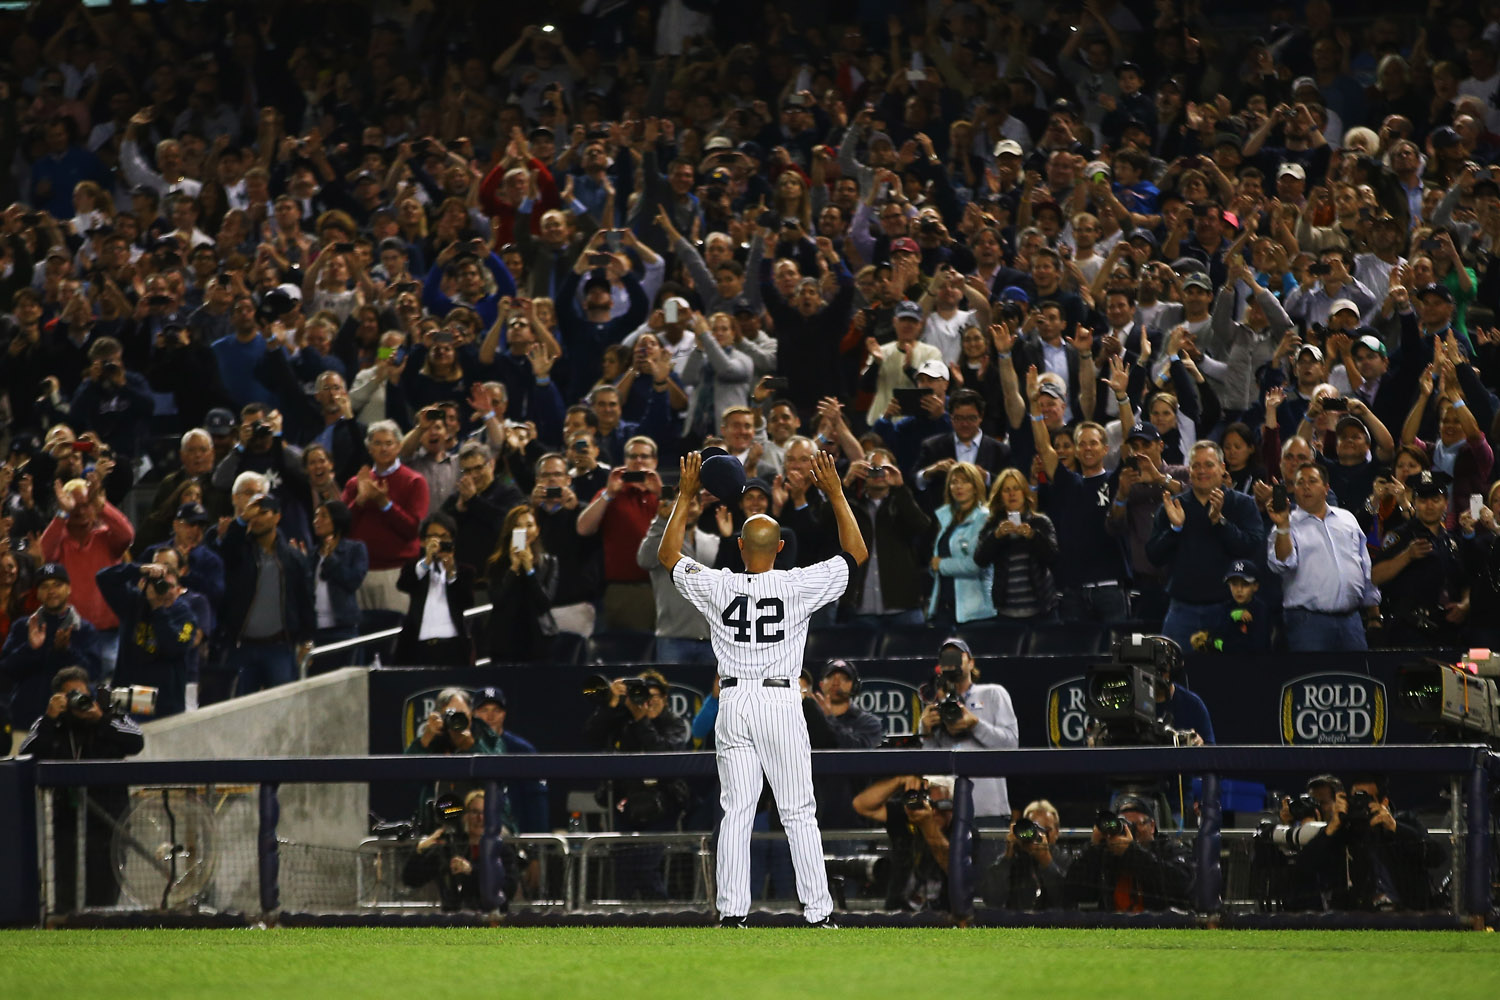 Sept. 26, 2013. Mariano Rivera #42 of the New York Yankees waves to the crowd after leaving the game against the Tampa Bay Rays in the ninth inning  during their game at Yankee Stadium in the Bronx borough of New York City.